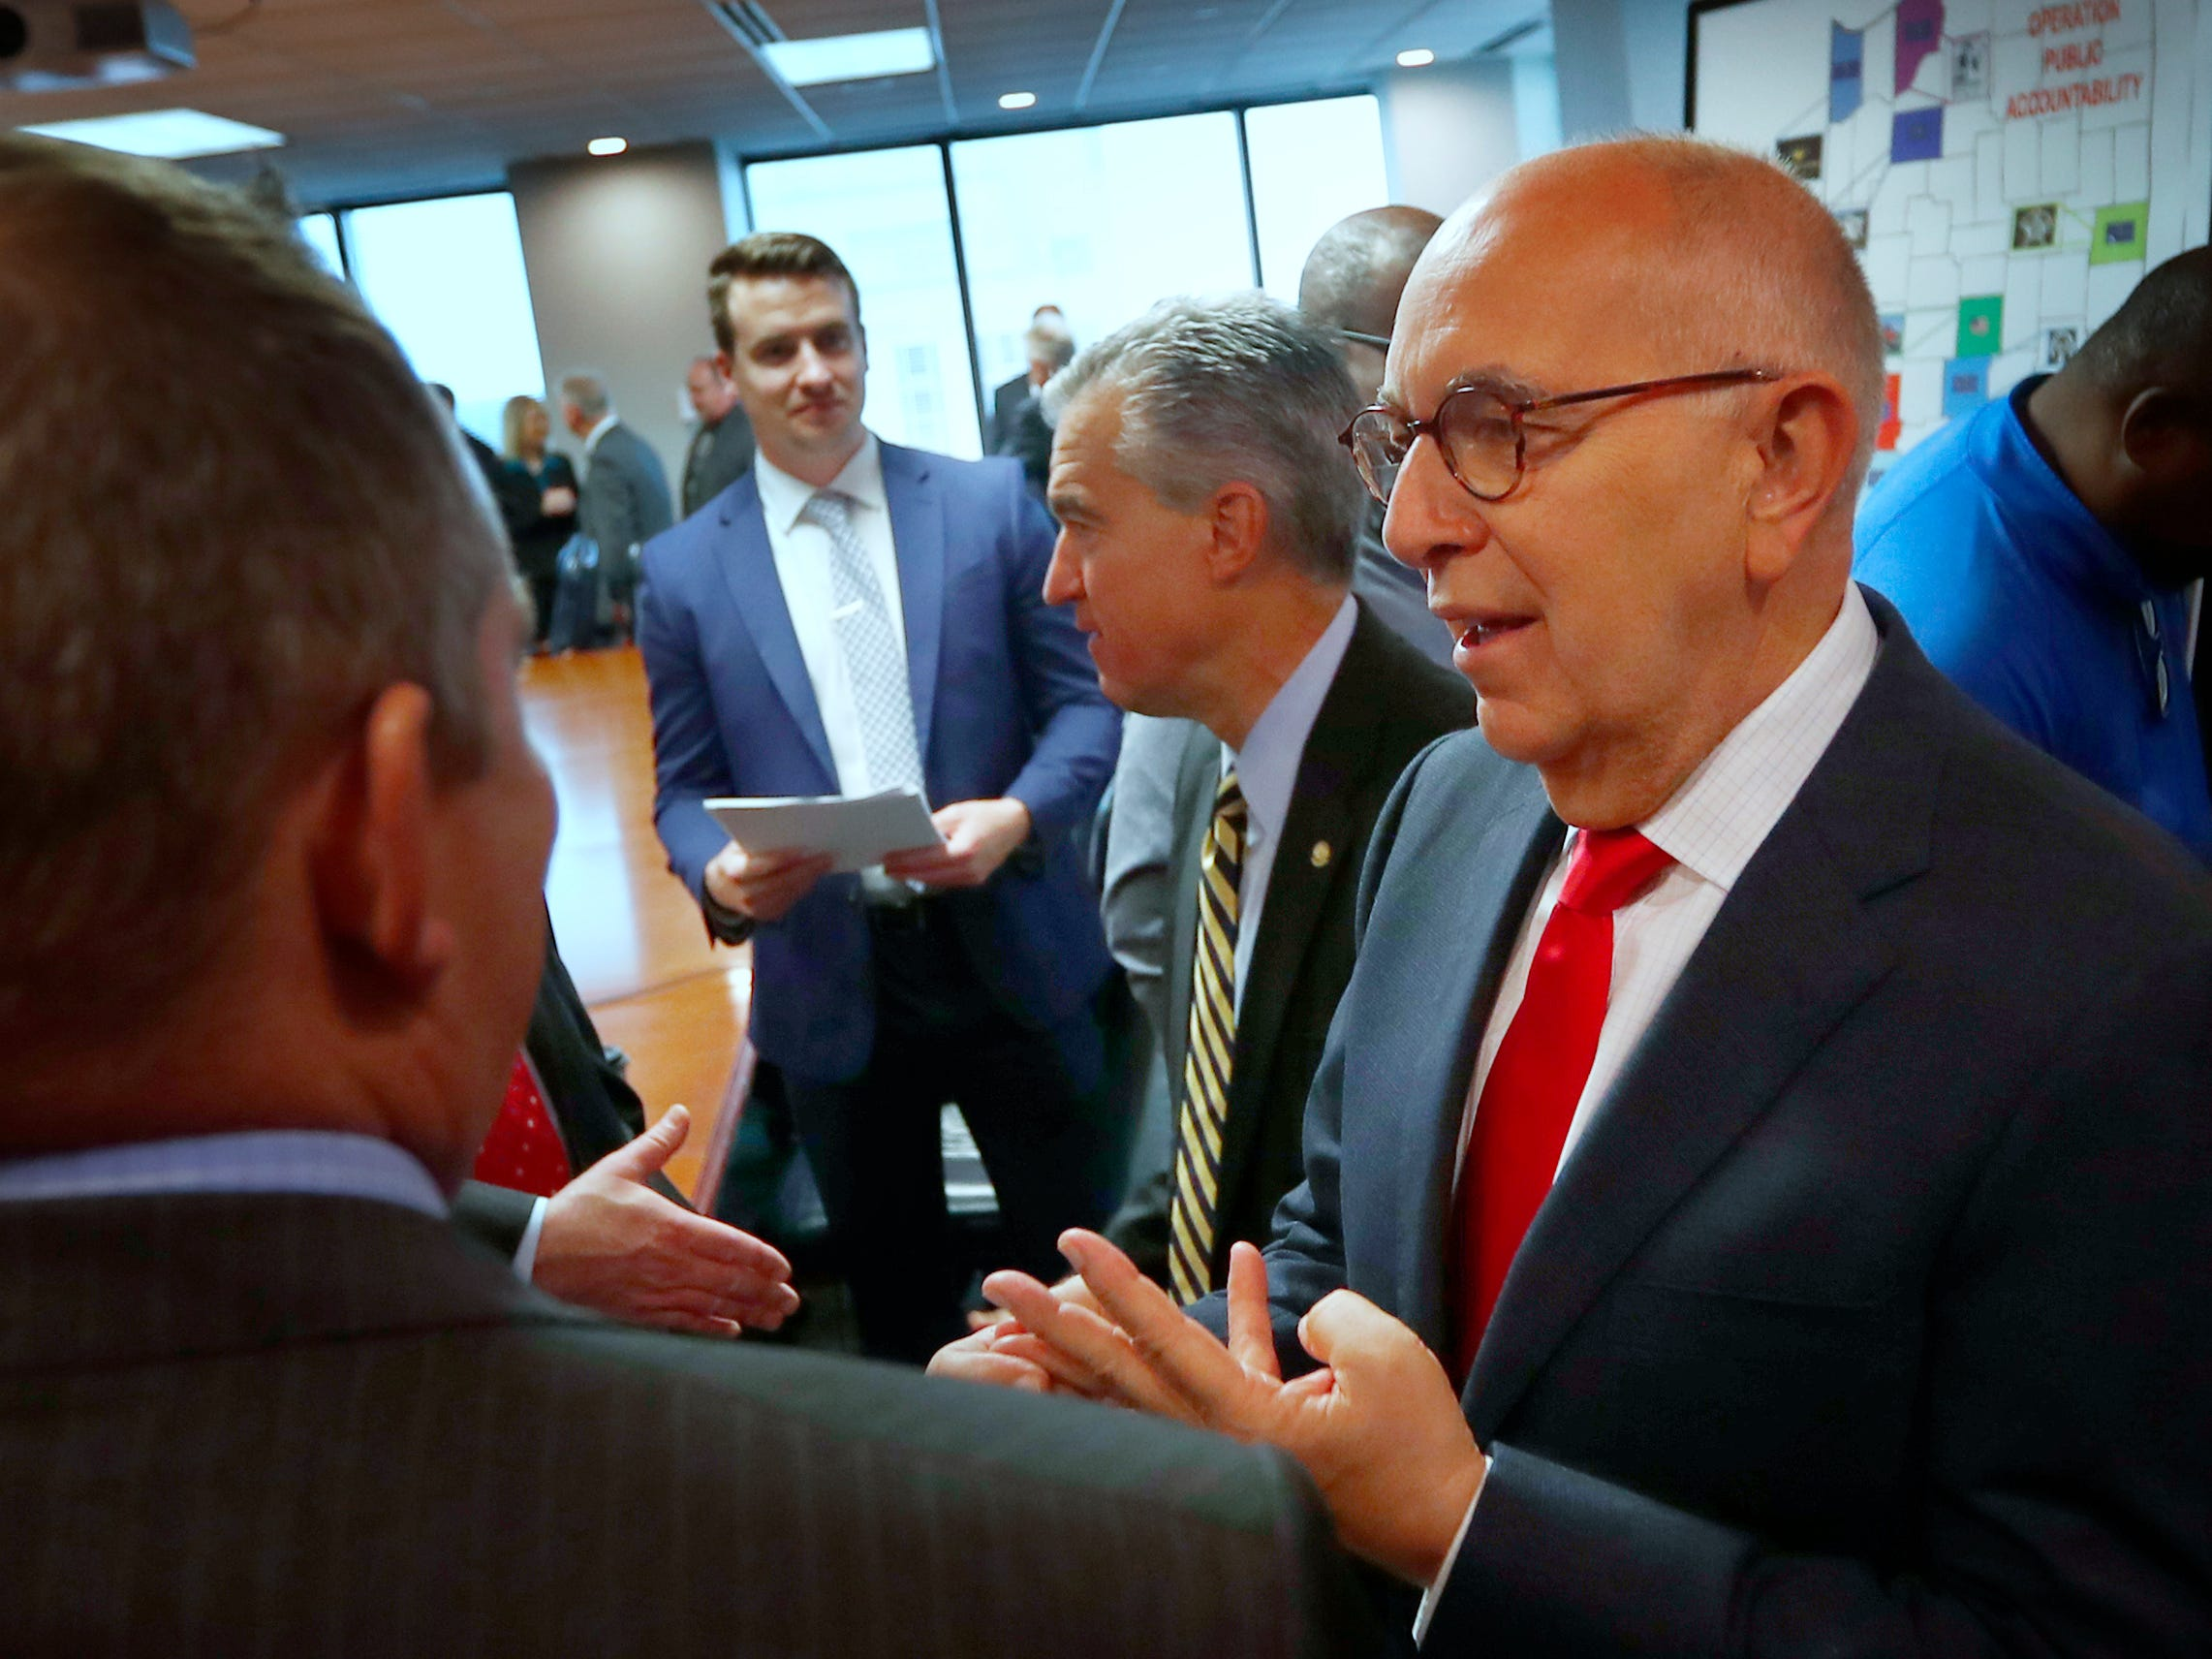 "U.S. Attorney for the Southern District of Indiana Josh Minkler, center, and Marion County Prosecutor Terry Curry, right, speak to people after a press conference at the U.S. Attorney's office, Thursday, Oct. 11, 2018.  U.S. Attorney Minkler, the FBI, Indiana State Police, and the State Board of Accounts release details about joint operation in a crackdown involving ""state-wide corruption,"" from Operation Public Accountability."